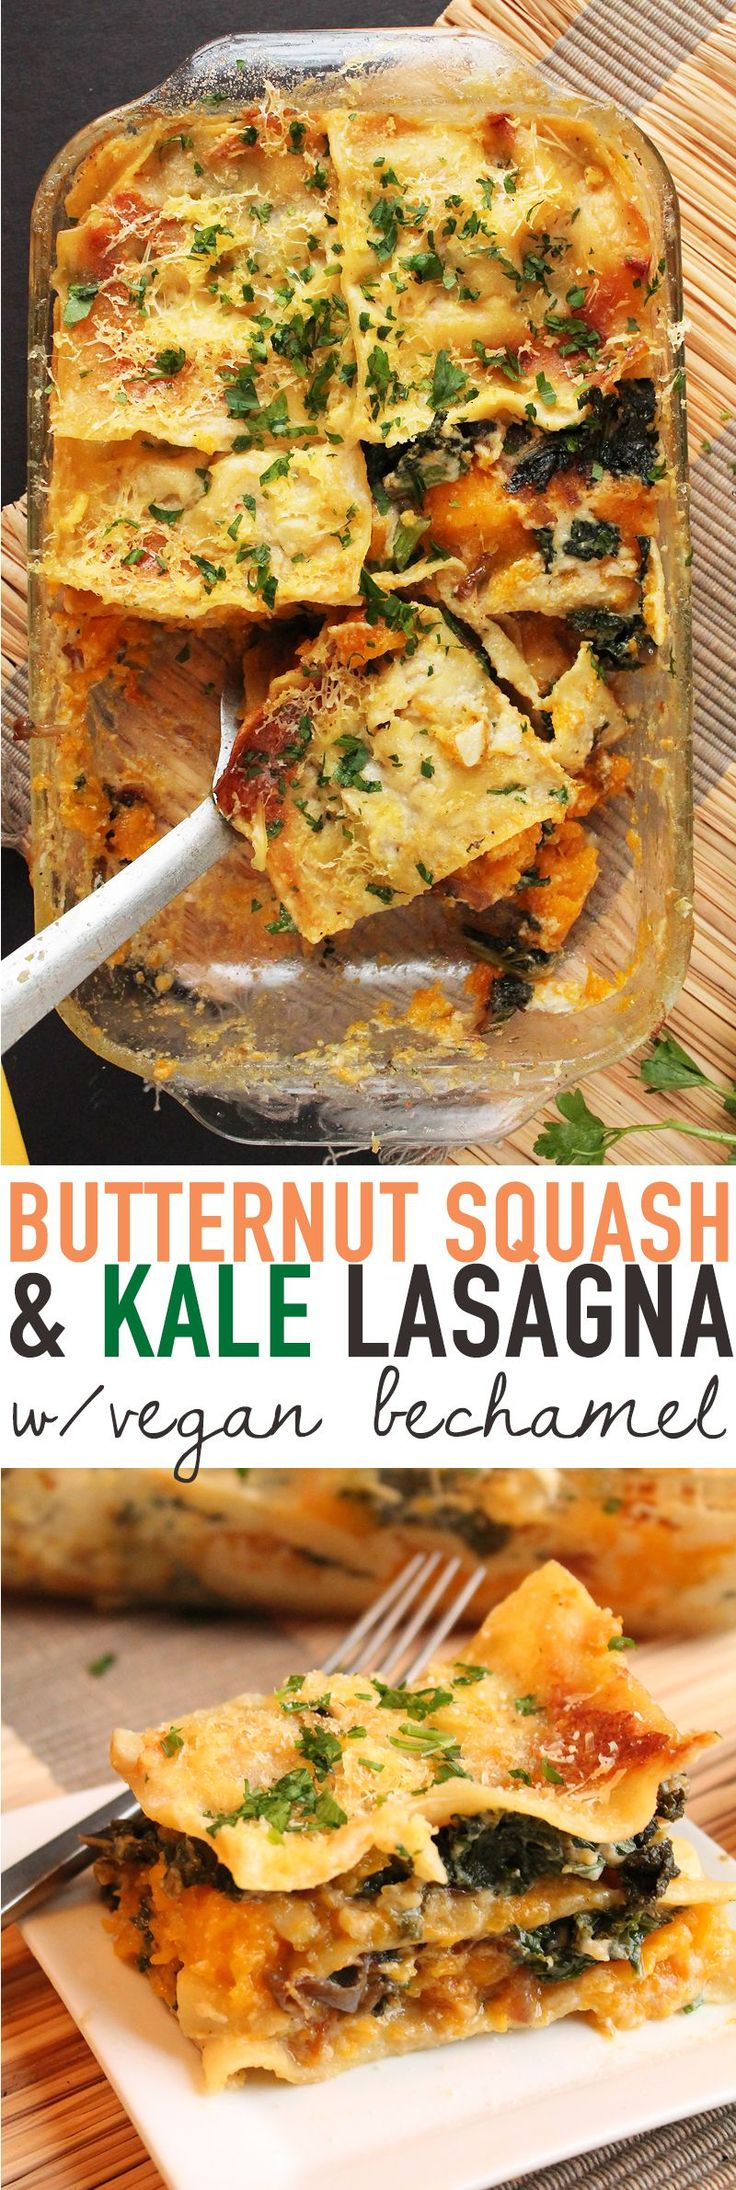 Cozy up this winter with this Butternut Squash and Kale Lasagna. You'll be glad you did! Click the photo for the full recipe.